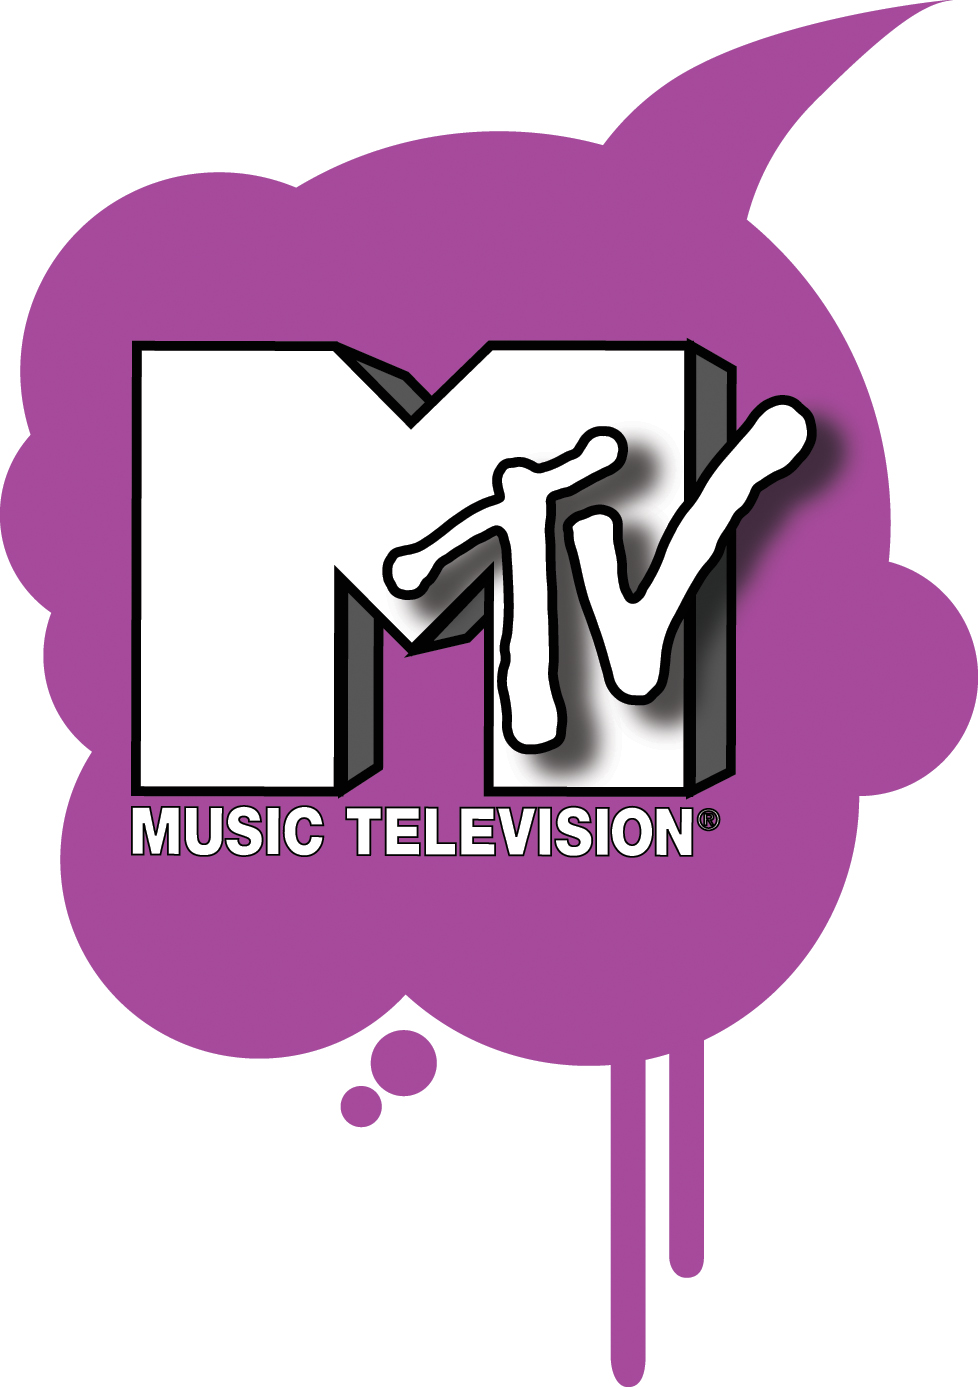 http://djdocrok.files.wordpress.com/2008/05/mtv_logo.jpg